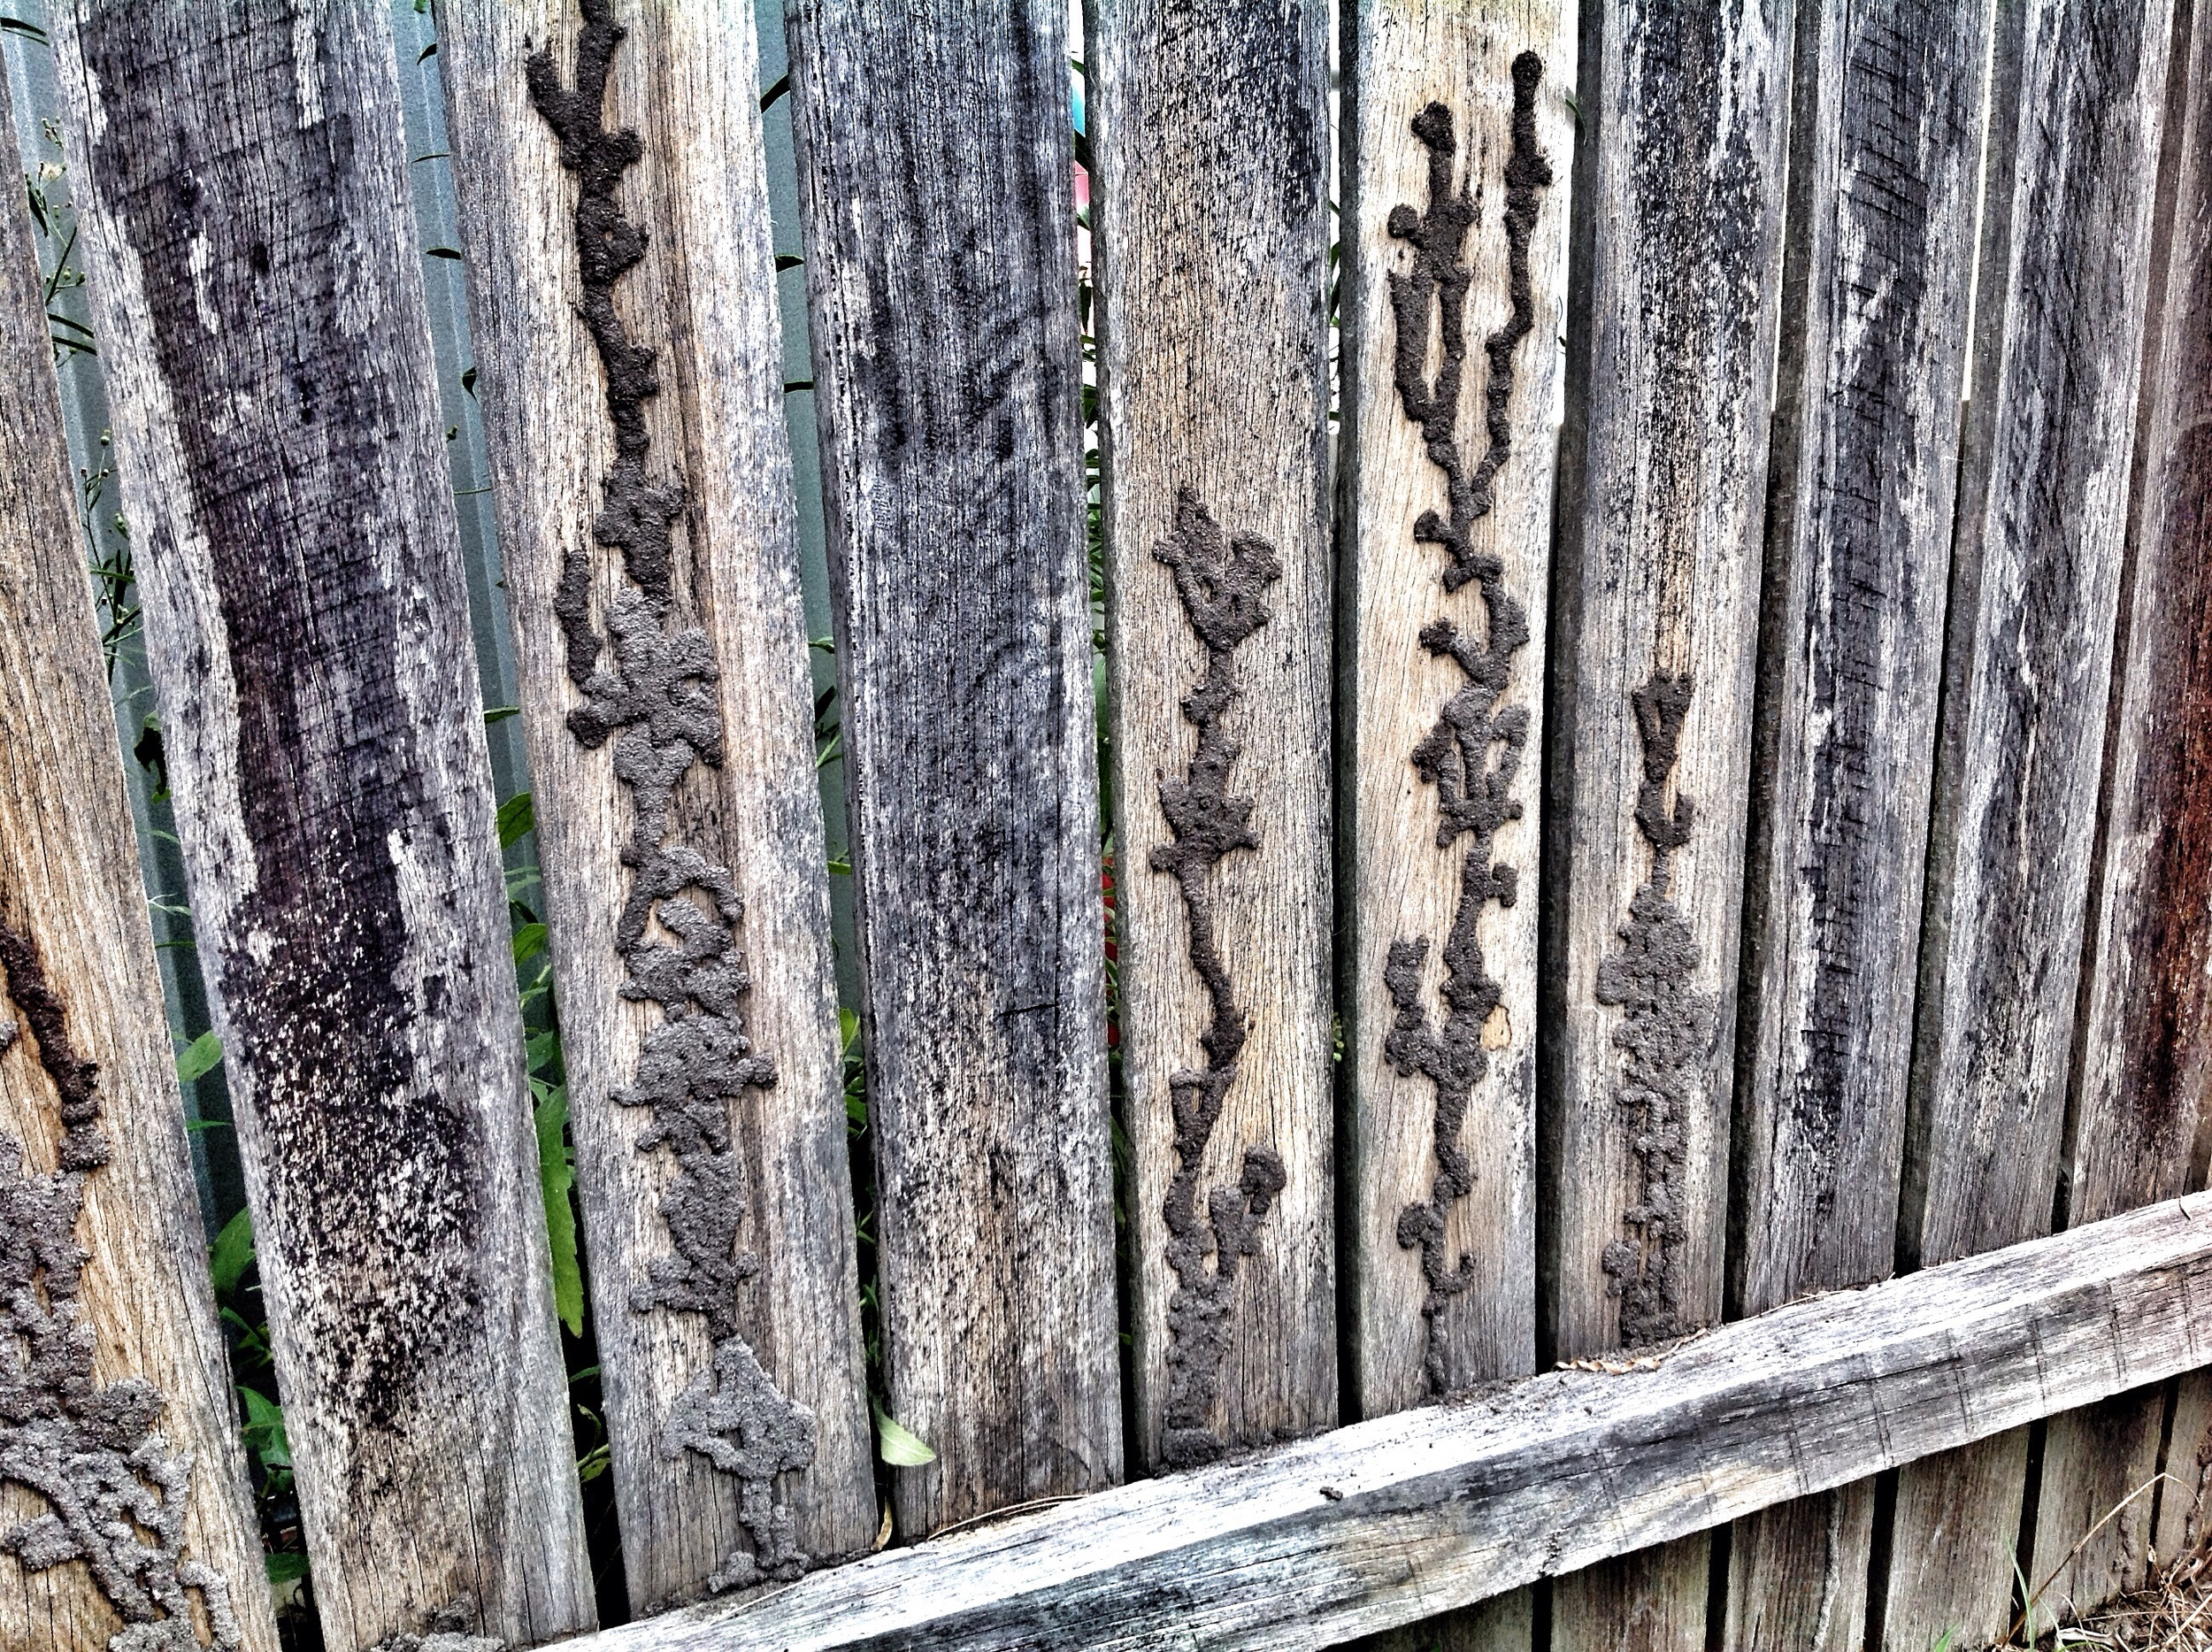 Termite galleries on the back of this fence show that the termites are quite a bit partial to fences!